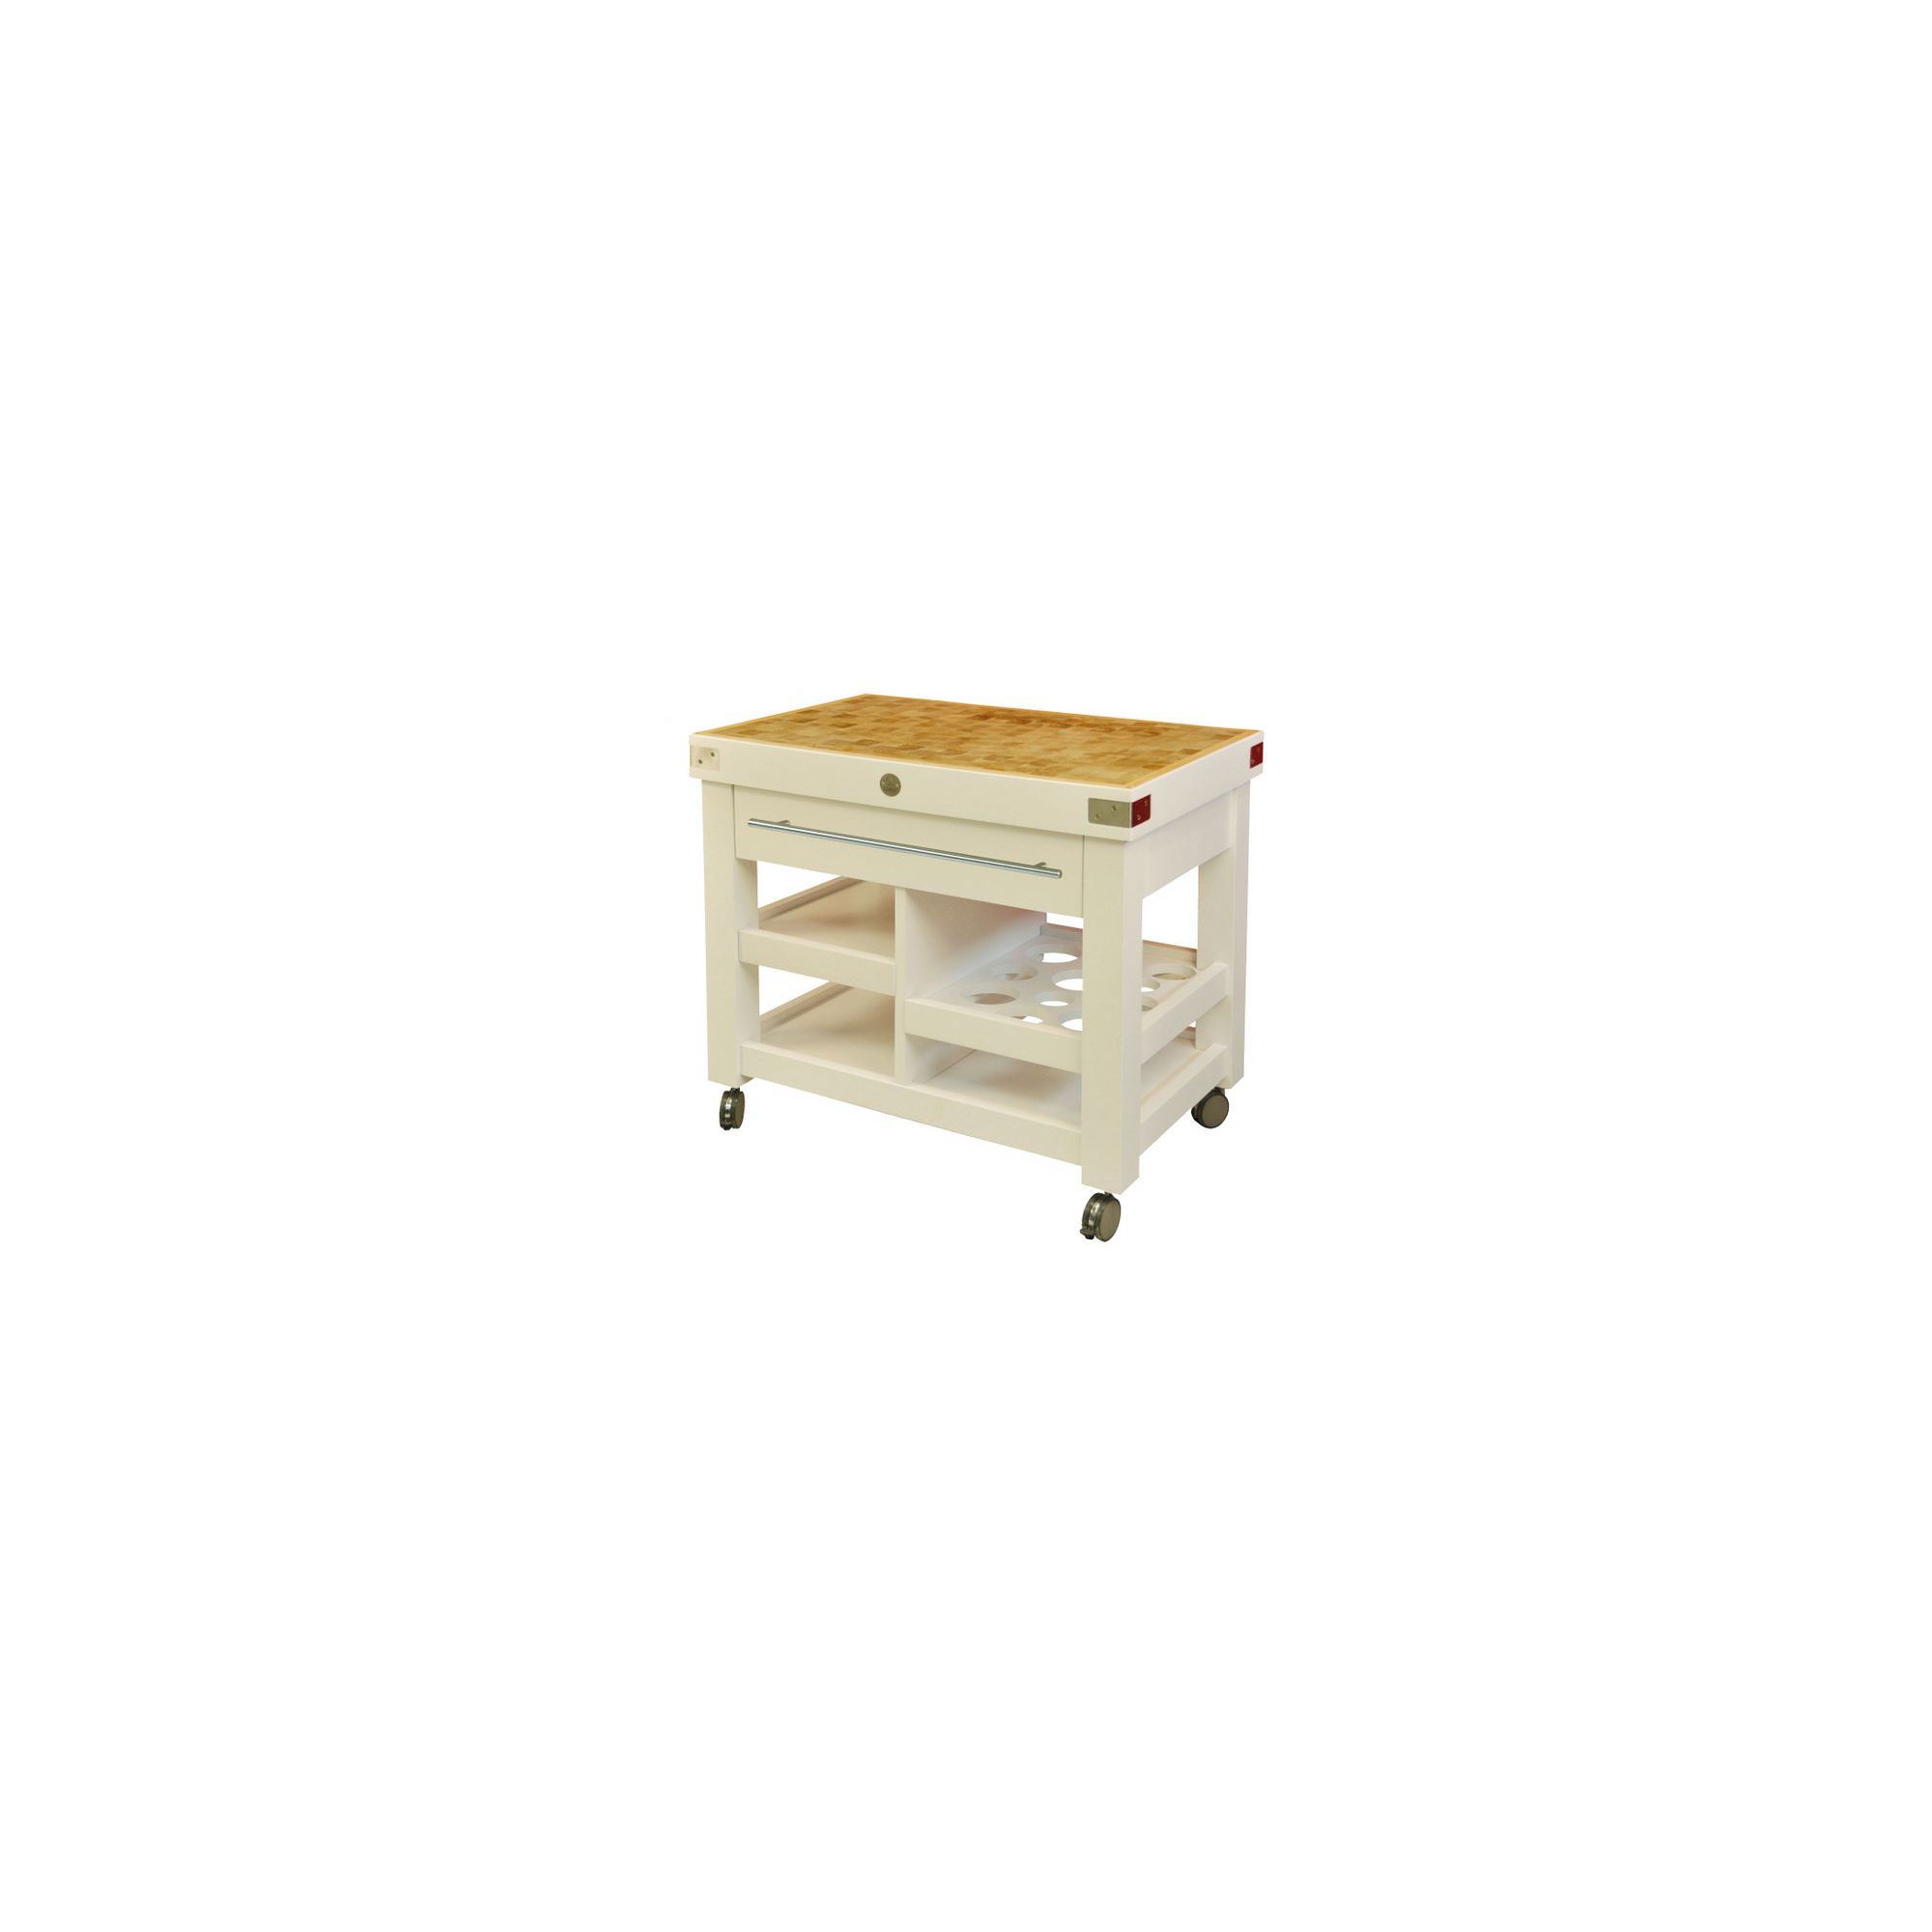 Chabret Multifunction Kitchen Cart - 85cm X 120cm X 60cm at Tesco Direct